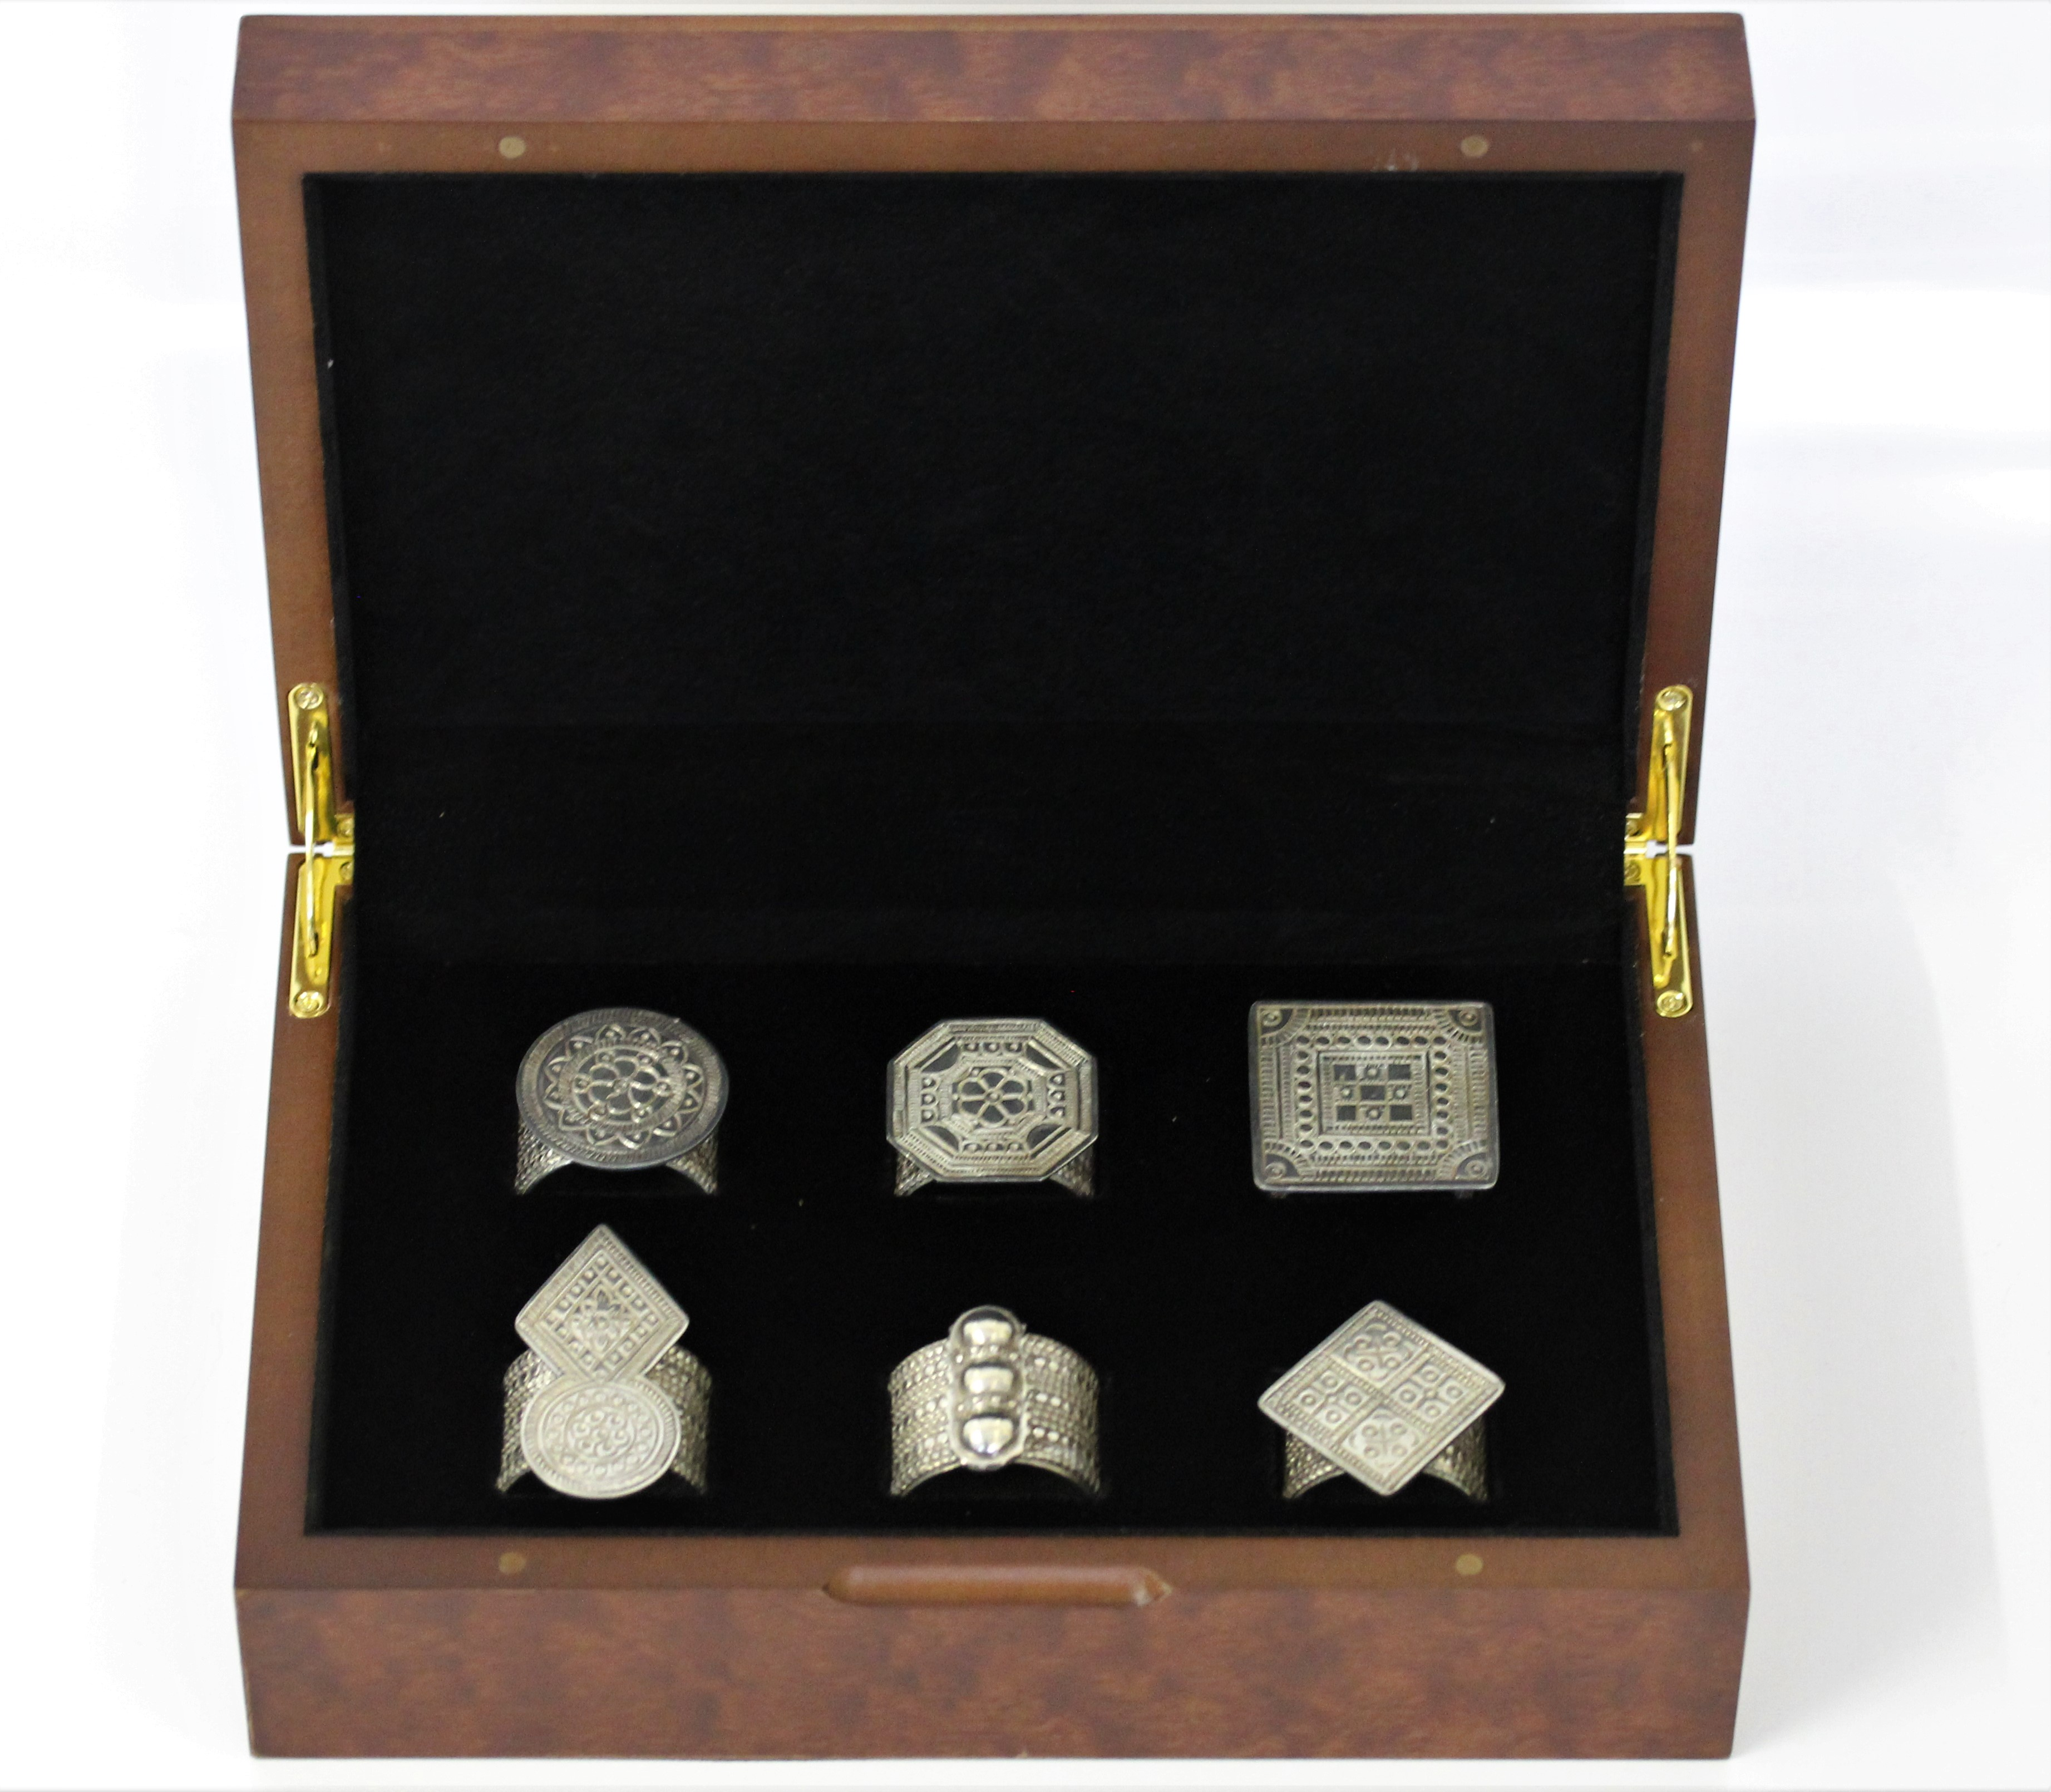 Six various patterned napkin rings based on traditional Omani rings, housed in fitted box from